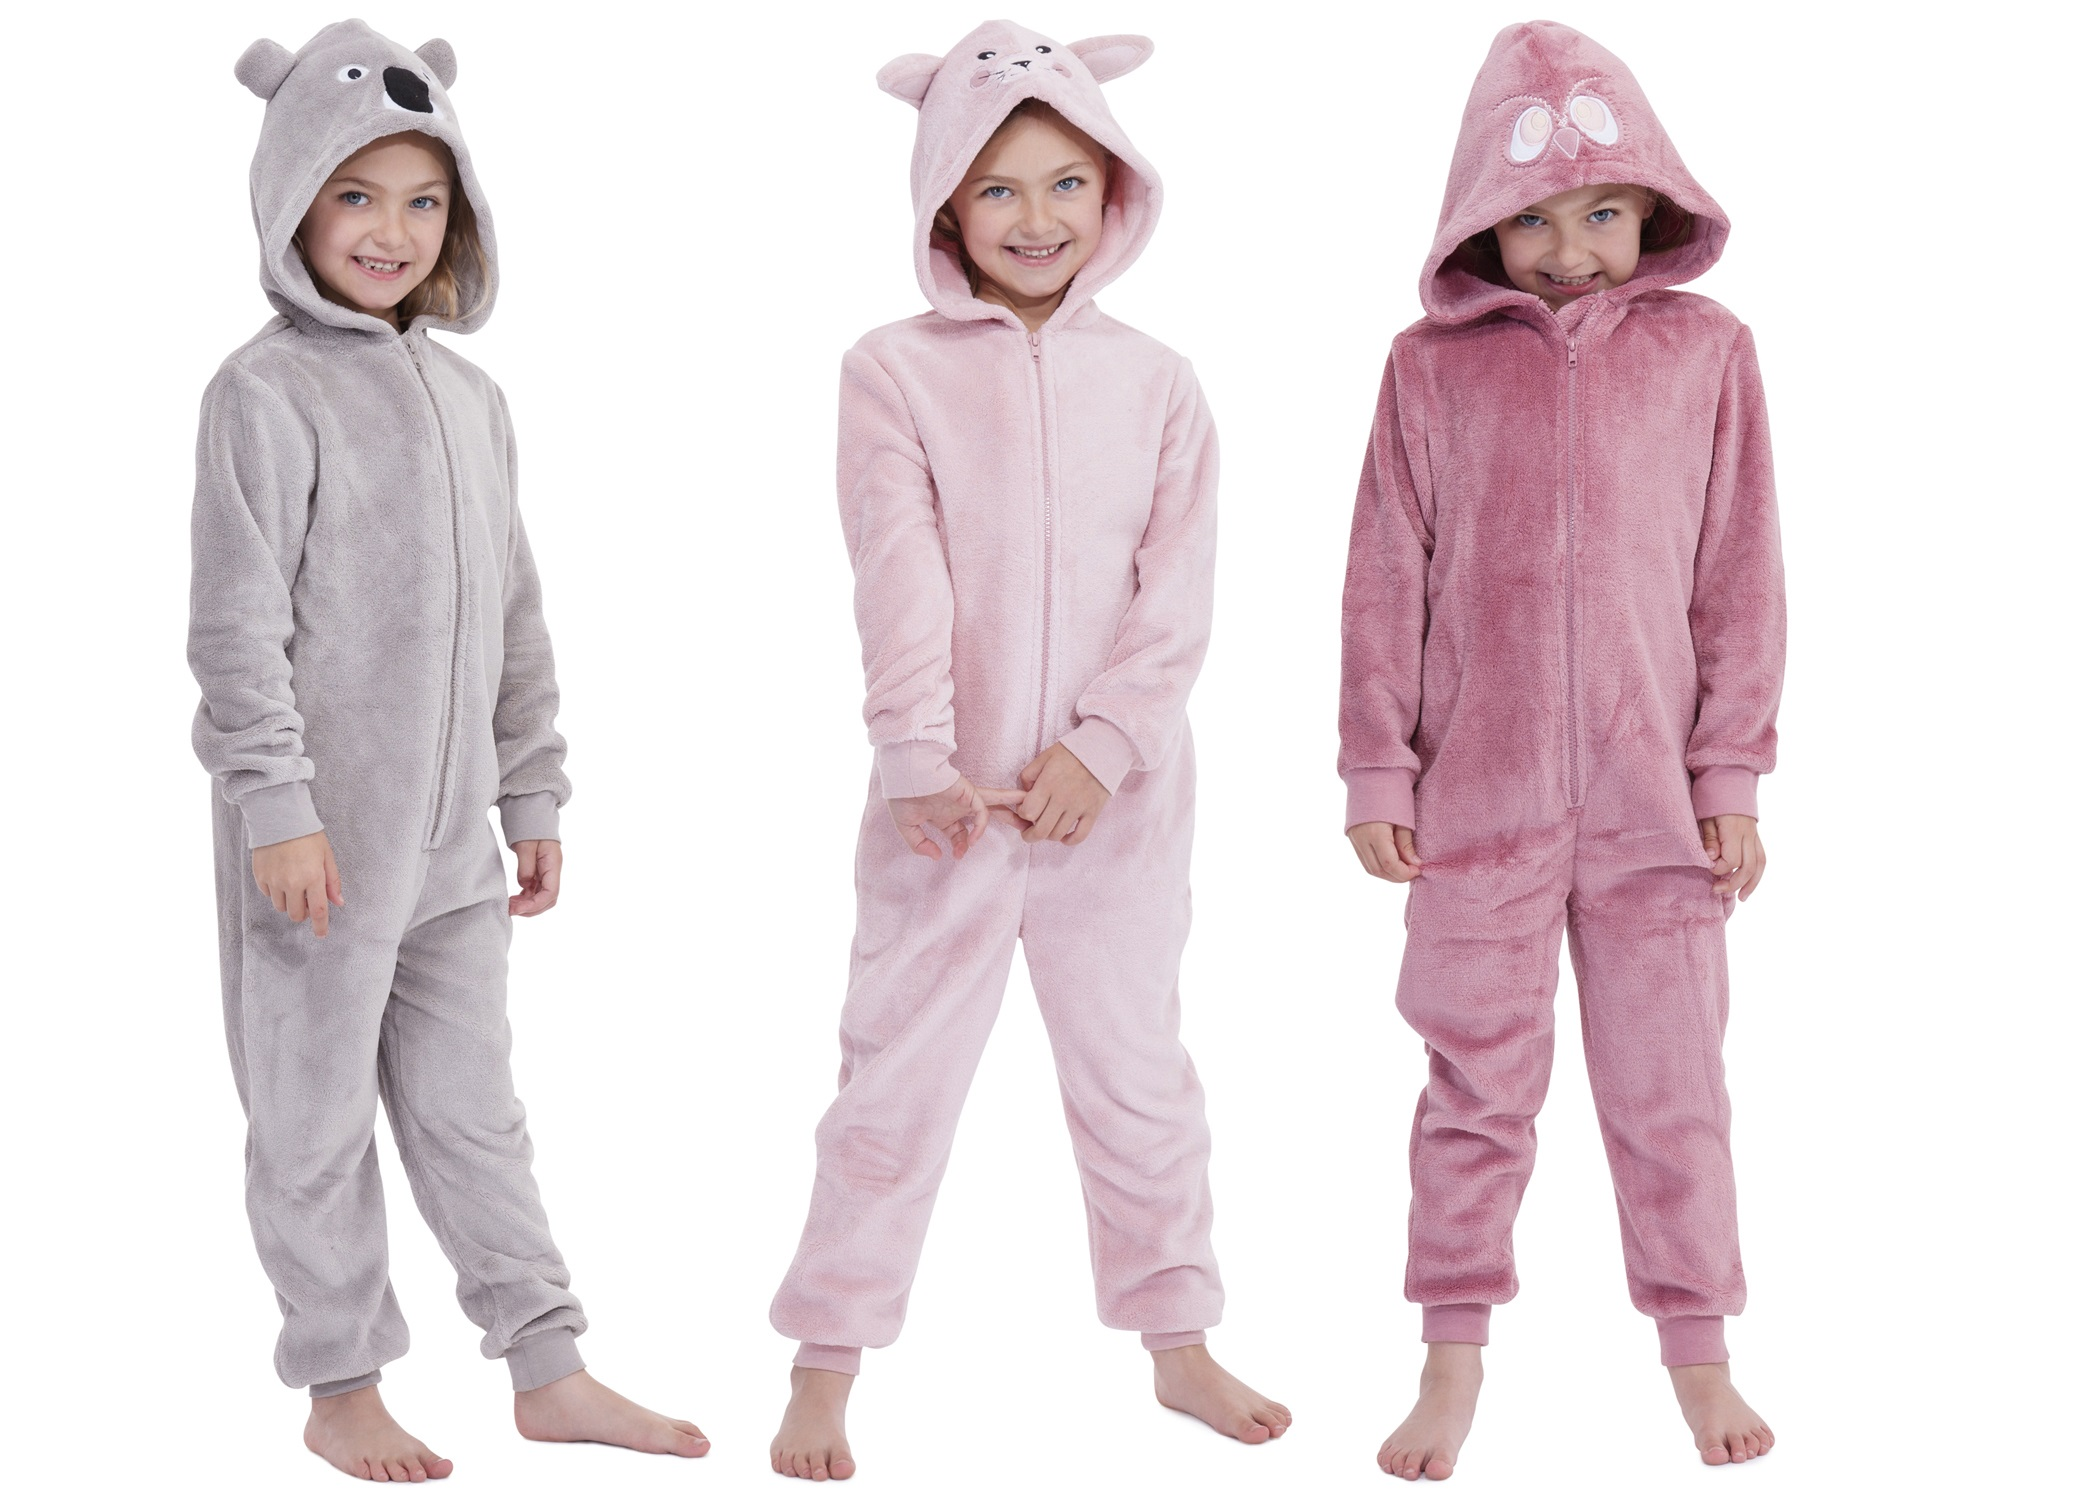 Kids Girls Boys Hooded Fleece Onesie All In 1 Jumpsuit Pjs Pyjamas ... 31f3fd0b7